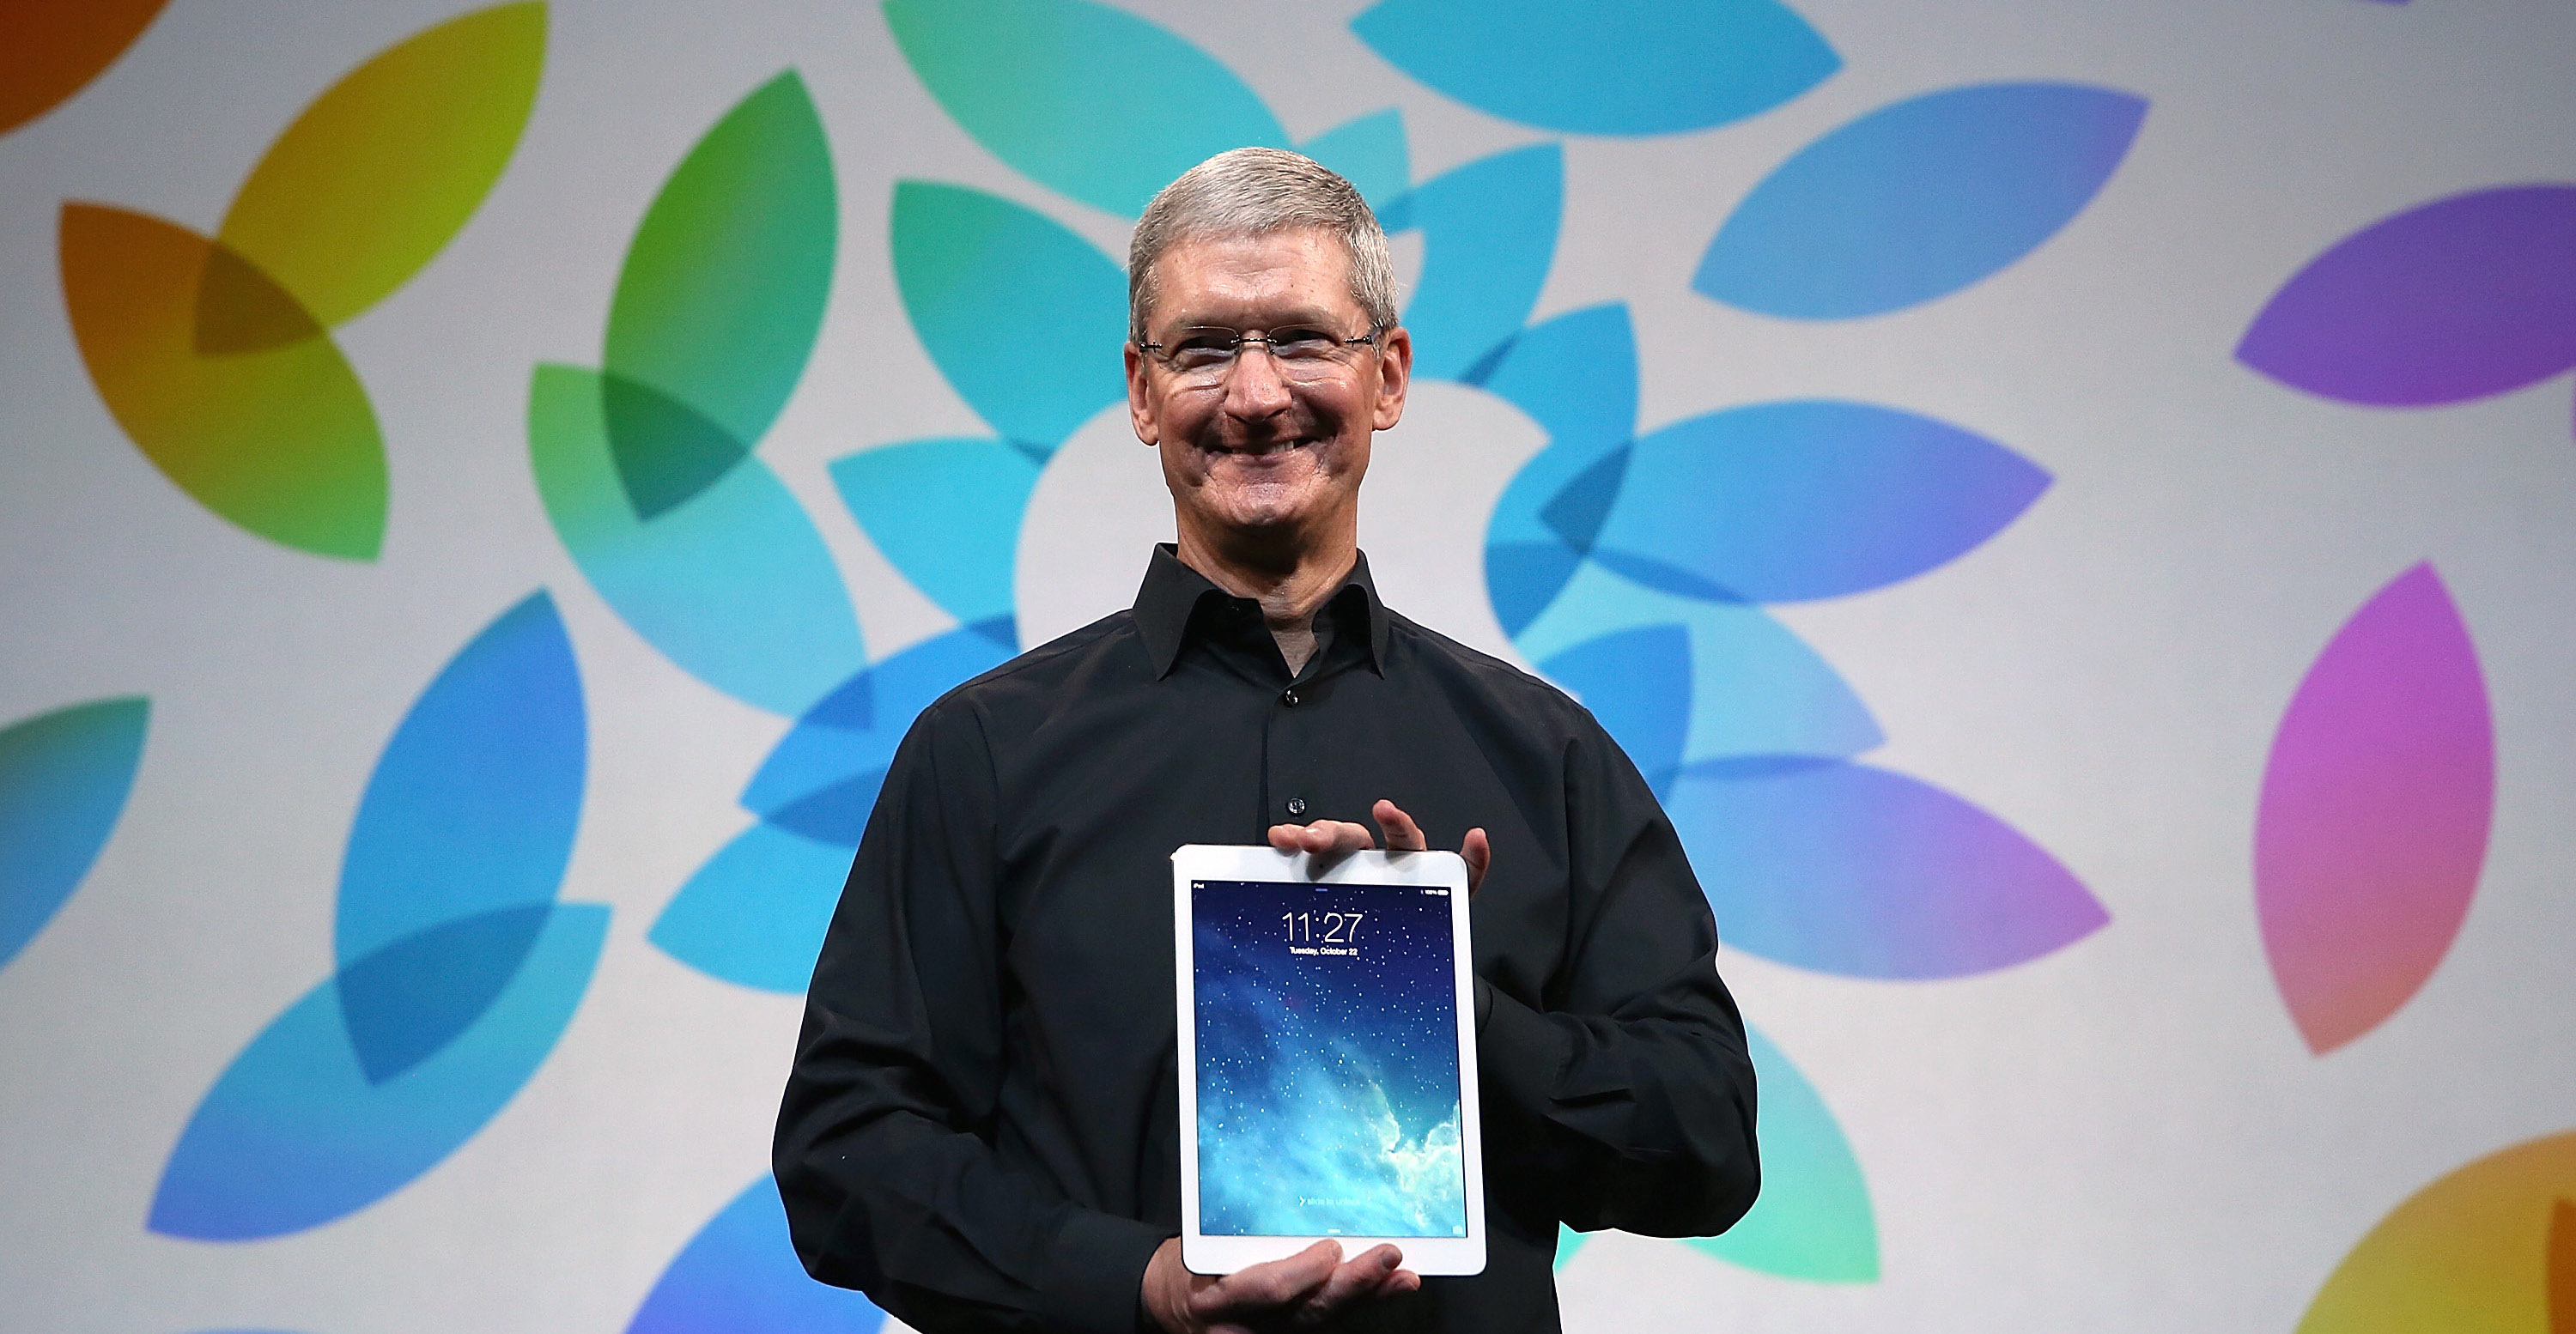 Tim Cook: Apple 'Changes the World' Through its Products